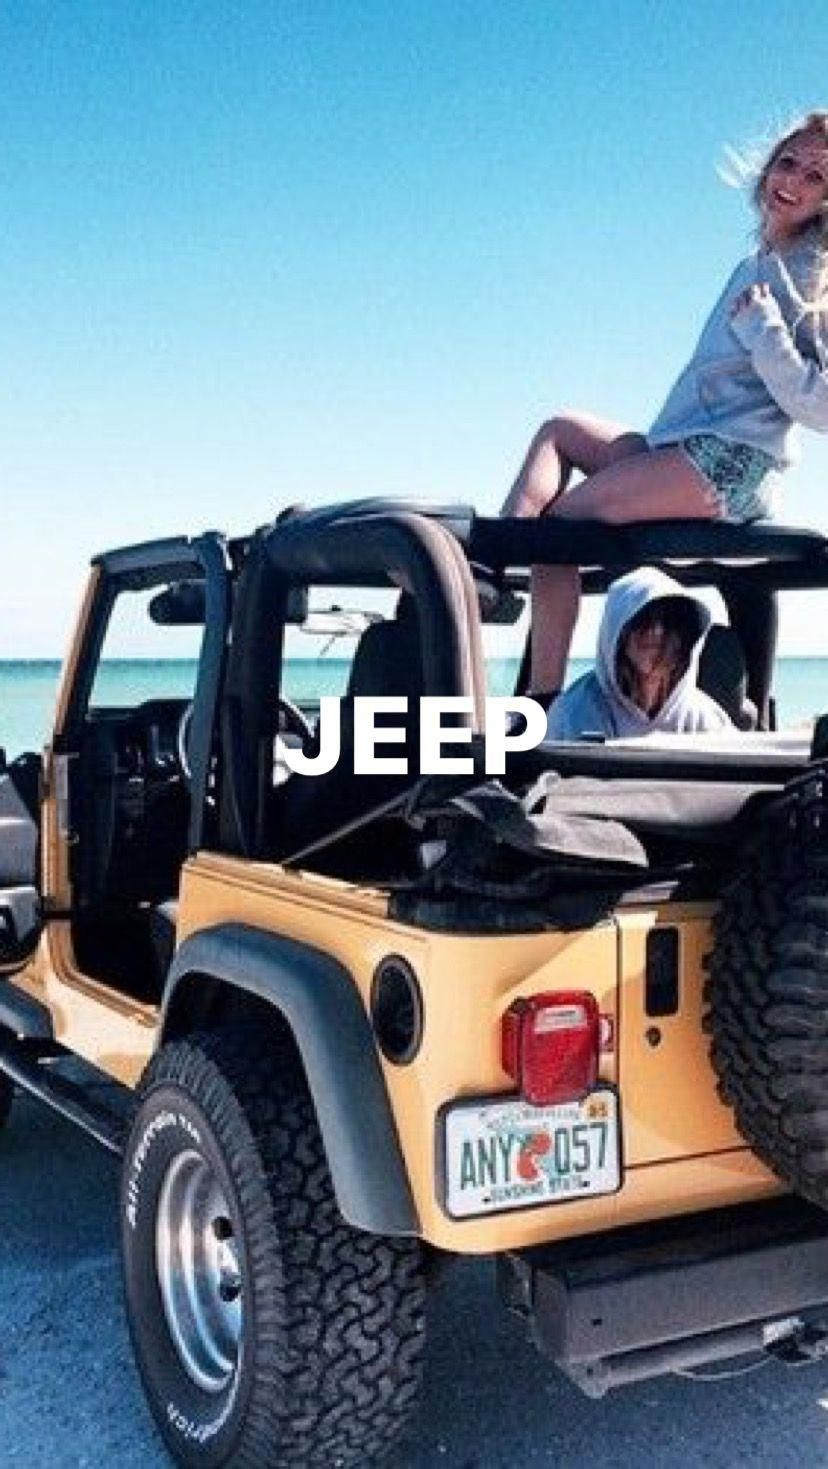 Pin De Dannyy Camacho En Sealover Surf Beach En 2020 Jeep